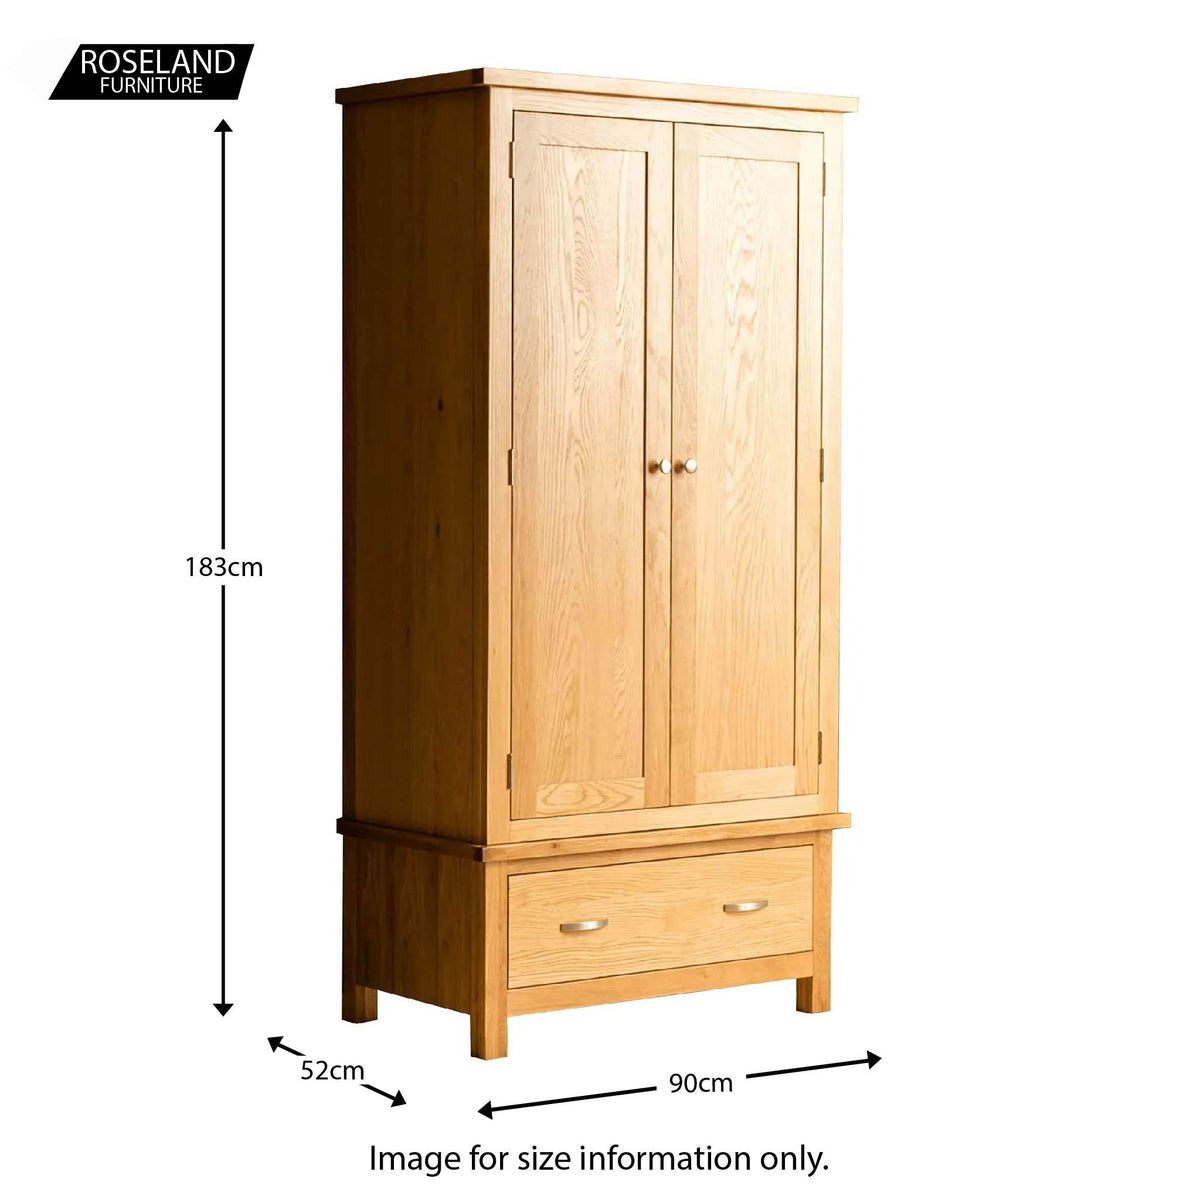 London Oak Bedroom Set - double wardrobe size guide